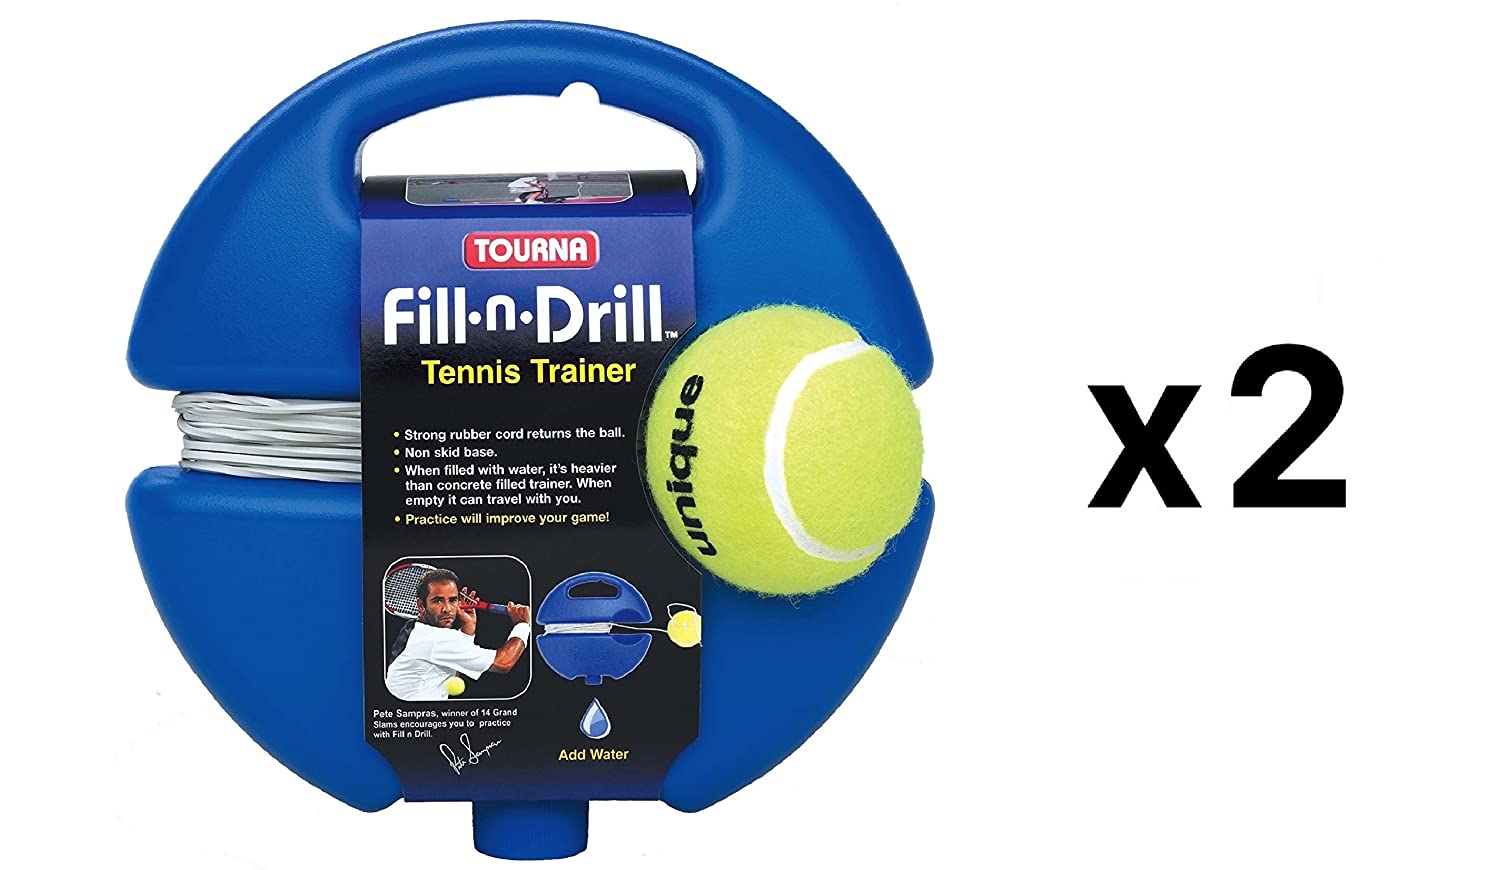 Tourna Fill n Drill Trainer Youth Tennis Practice Training Kids Aid 2-Pack: Amazon.es: Deportes y aire libre